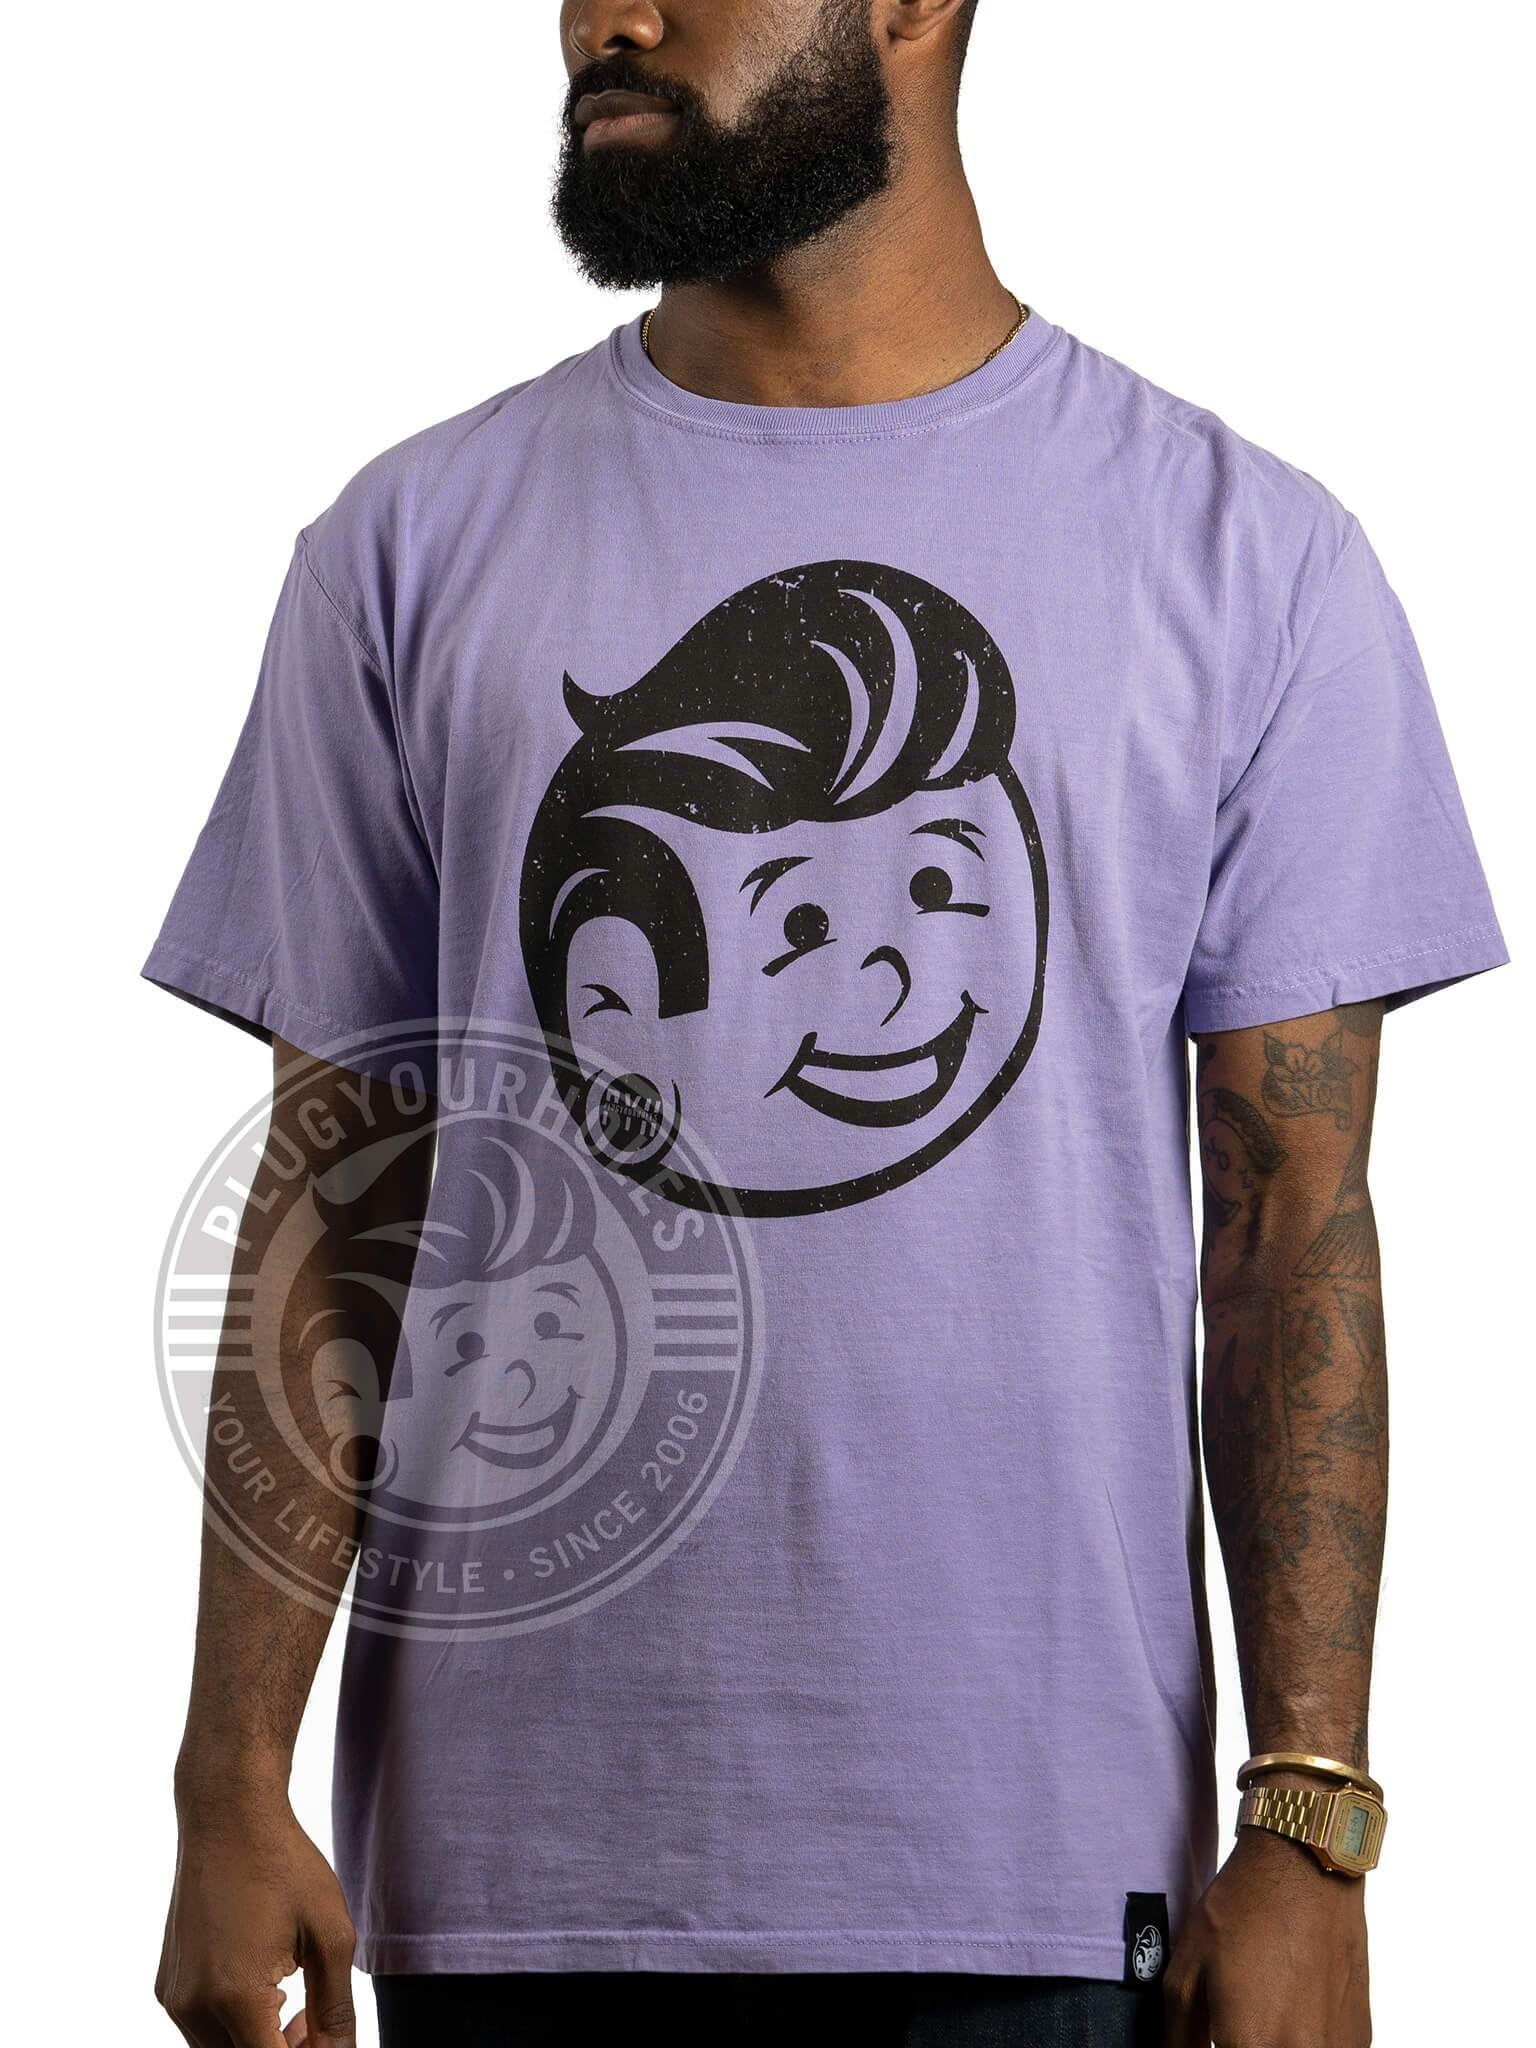 Plug Boy Distressed - Lavender - Comfort Wash Unisex Tee